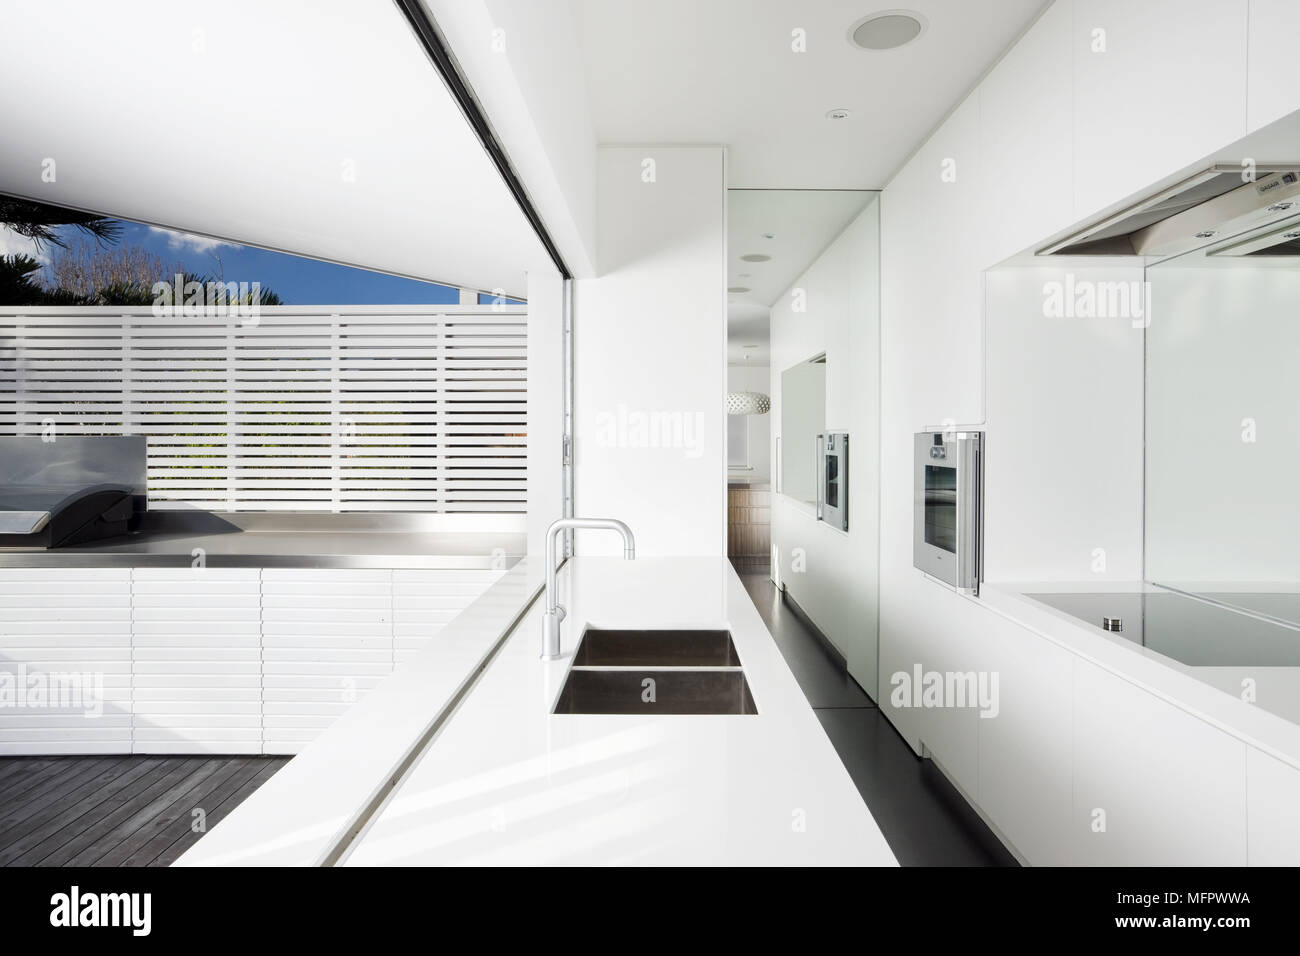 Double oven stockfotos & double oven bilder alamy